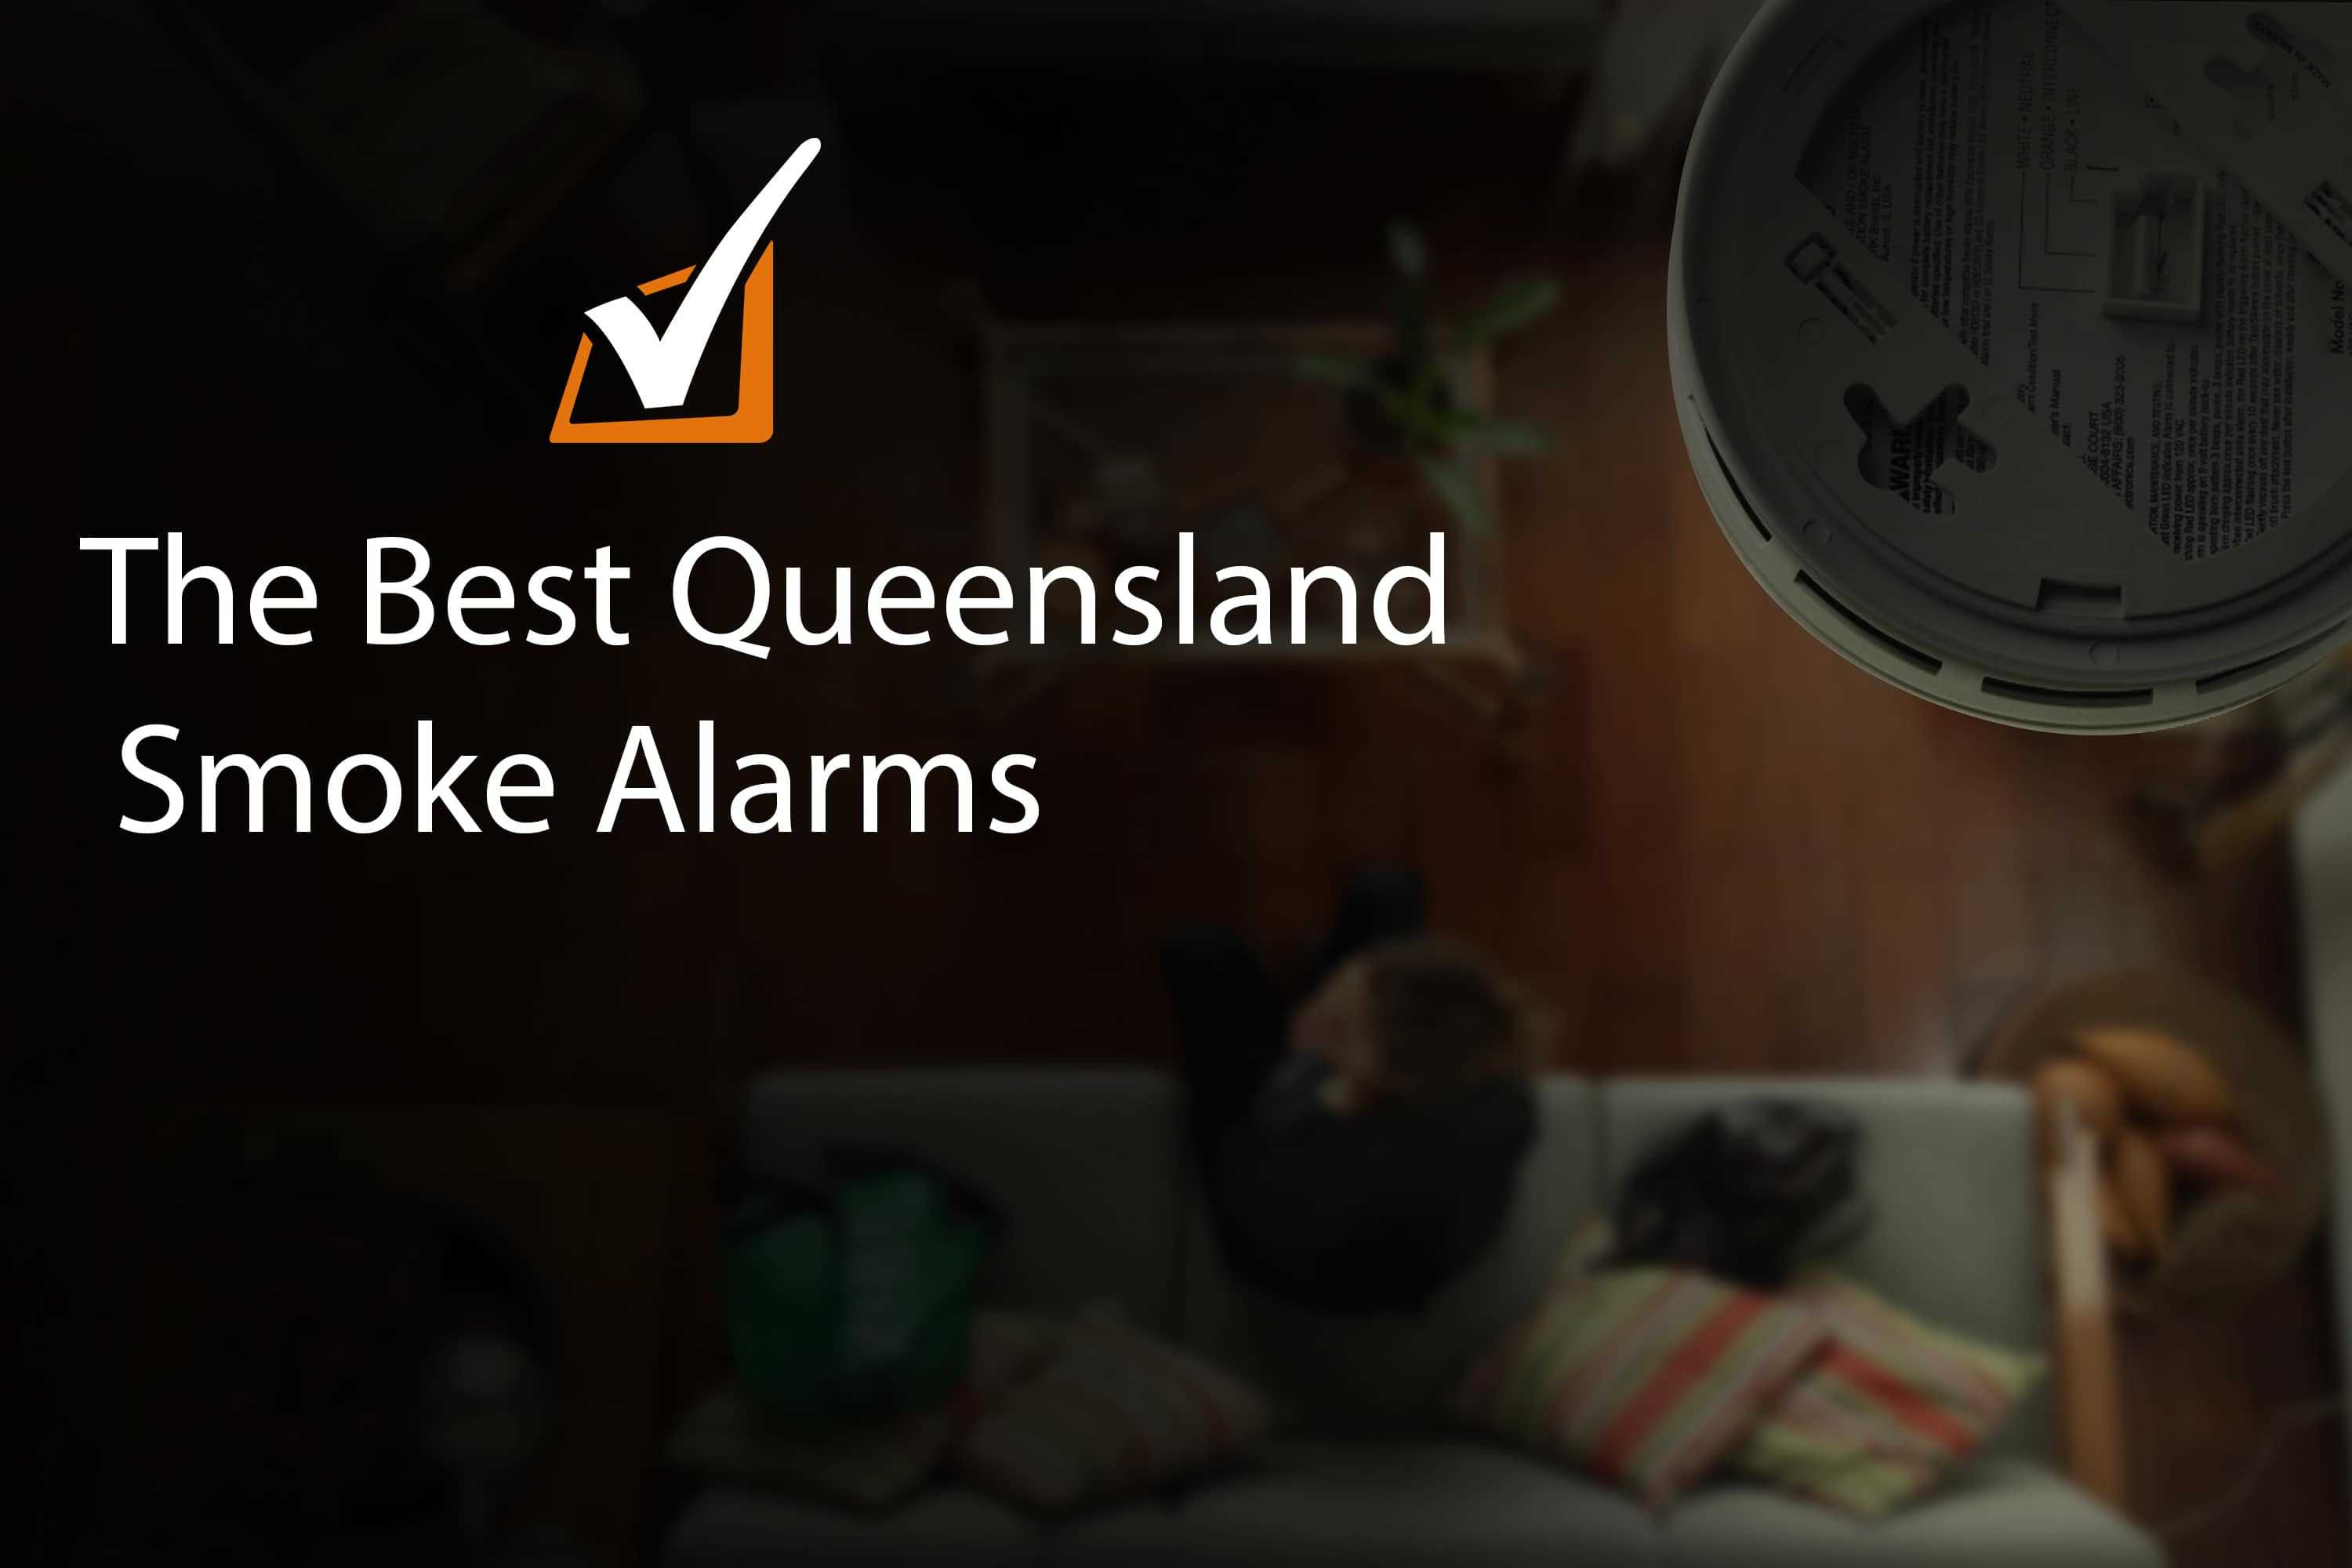 The Best Queensland Smoke Alarms